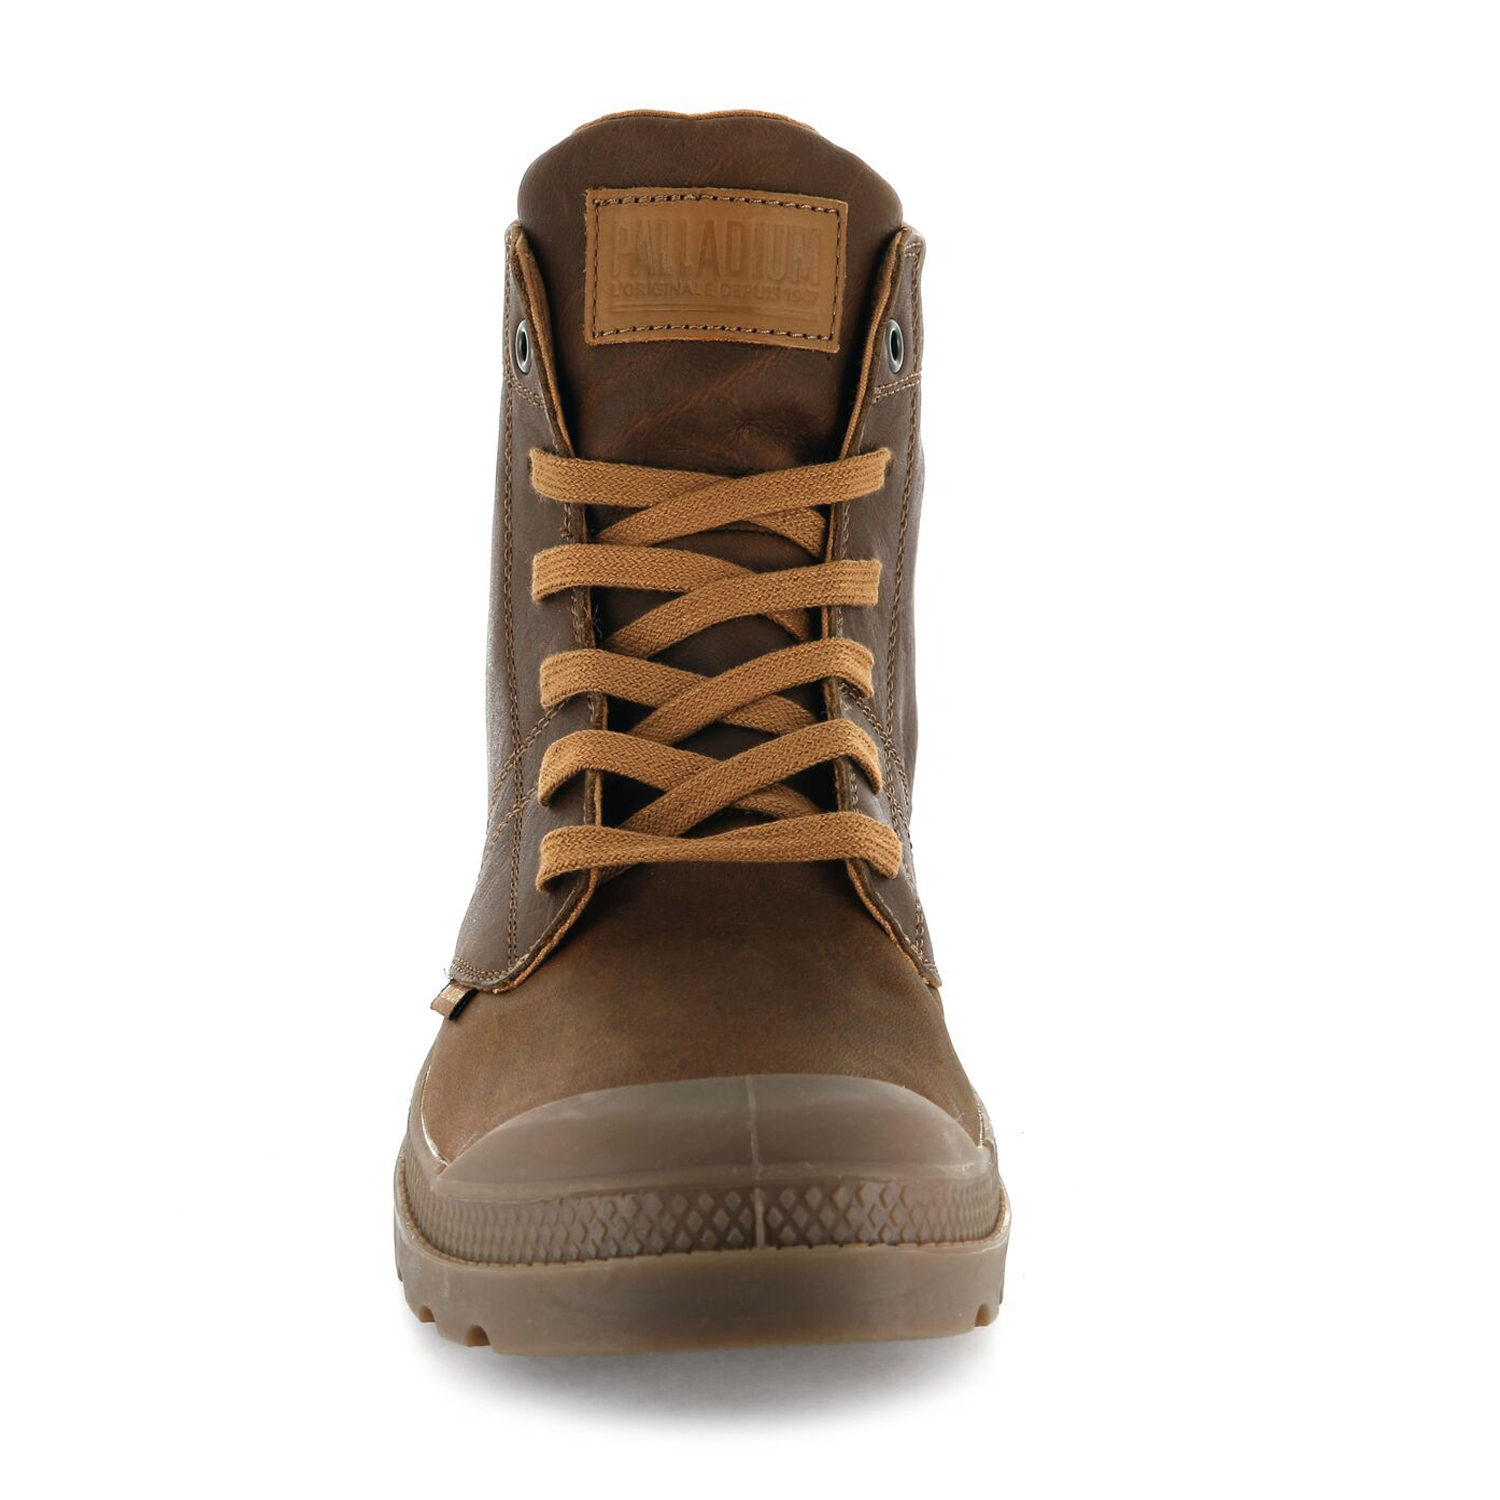 Palladium-Mens-Pallabrousse-Leather-Lace-Up-Boots-Walking-Chukka-Ankle-Shoes thumbnail 15